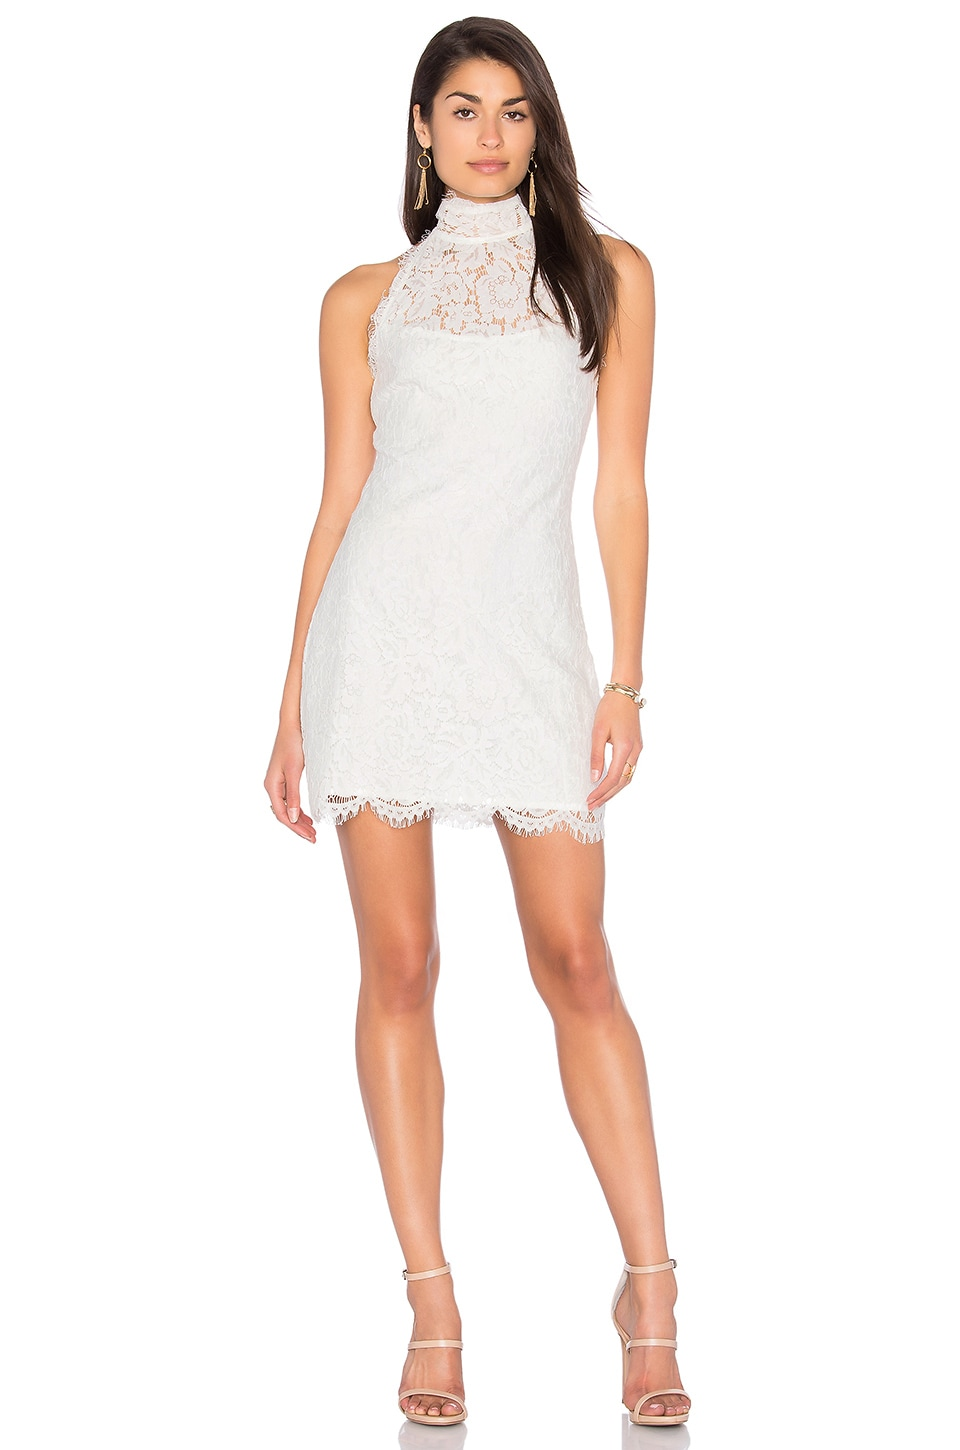 LIONESS Dancing with Fame Lace Mini Dress in White